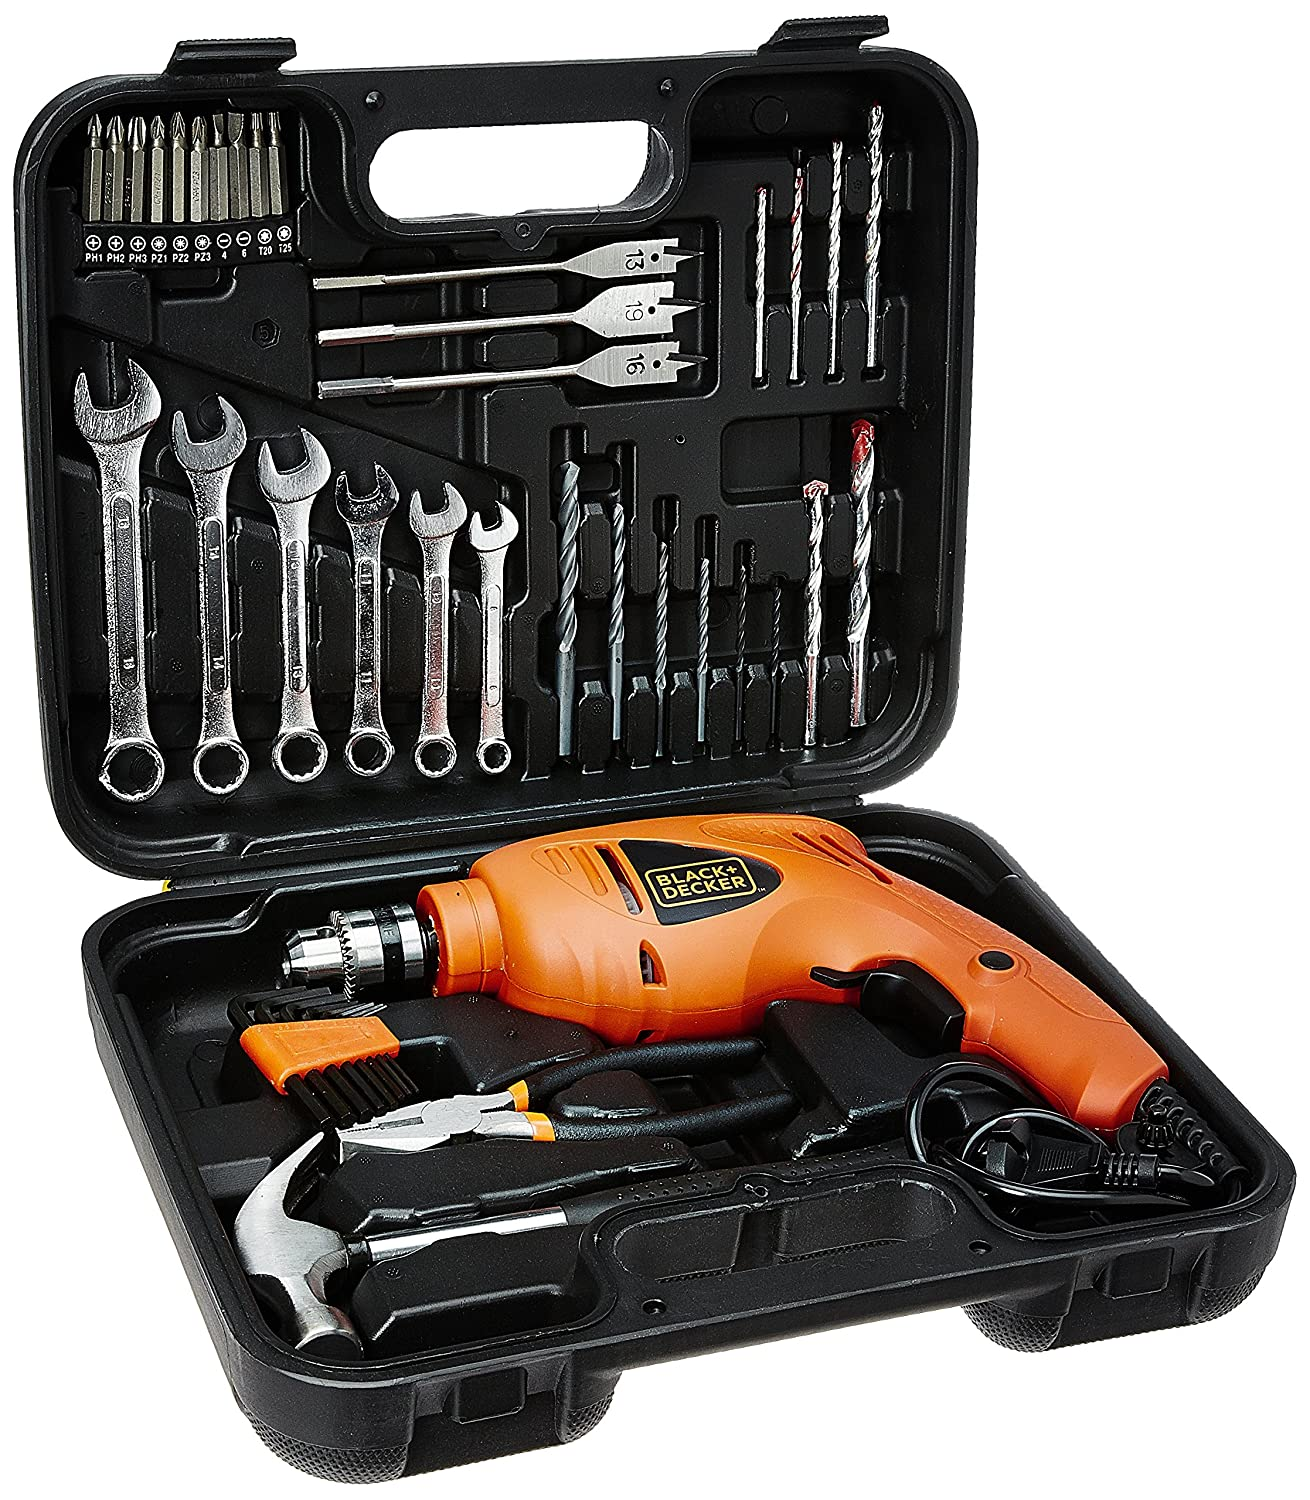 BLACK + DECKER HD455KA 10mm 550 Watt Impact Drill Kit (Orange, 41-Pieces)